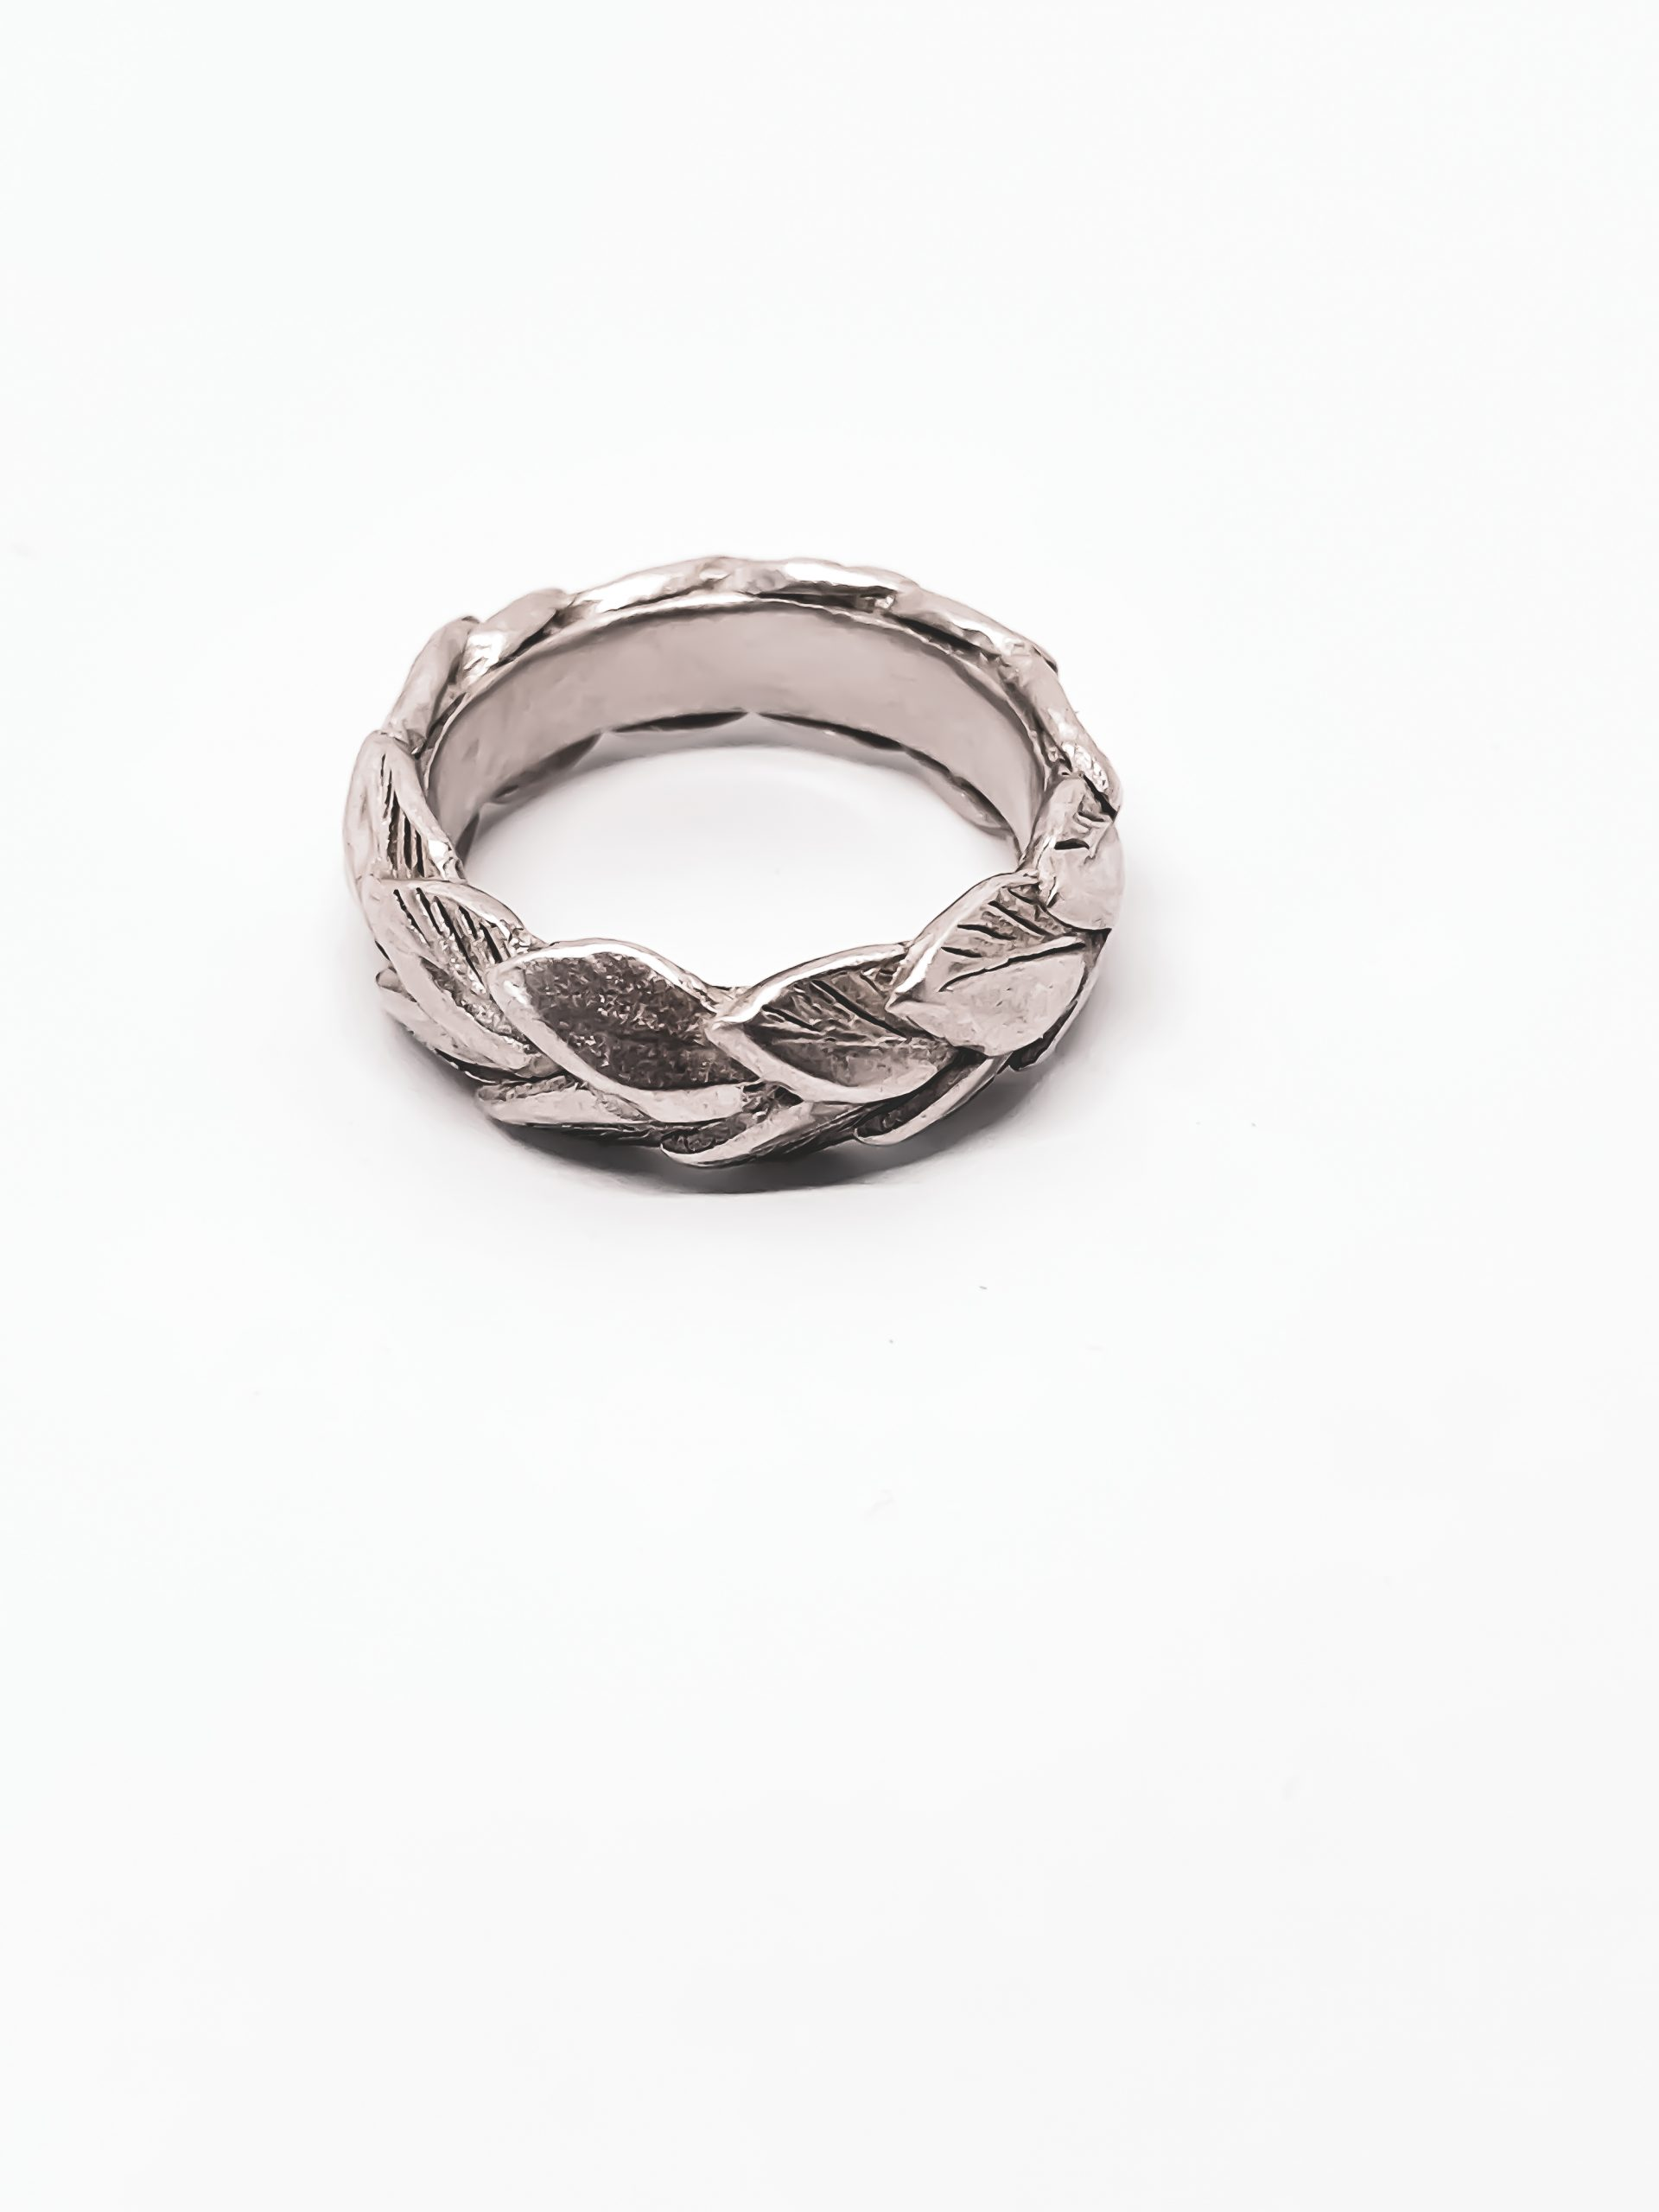 REVEALED – Double Leaf Band in Sterling Silver